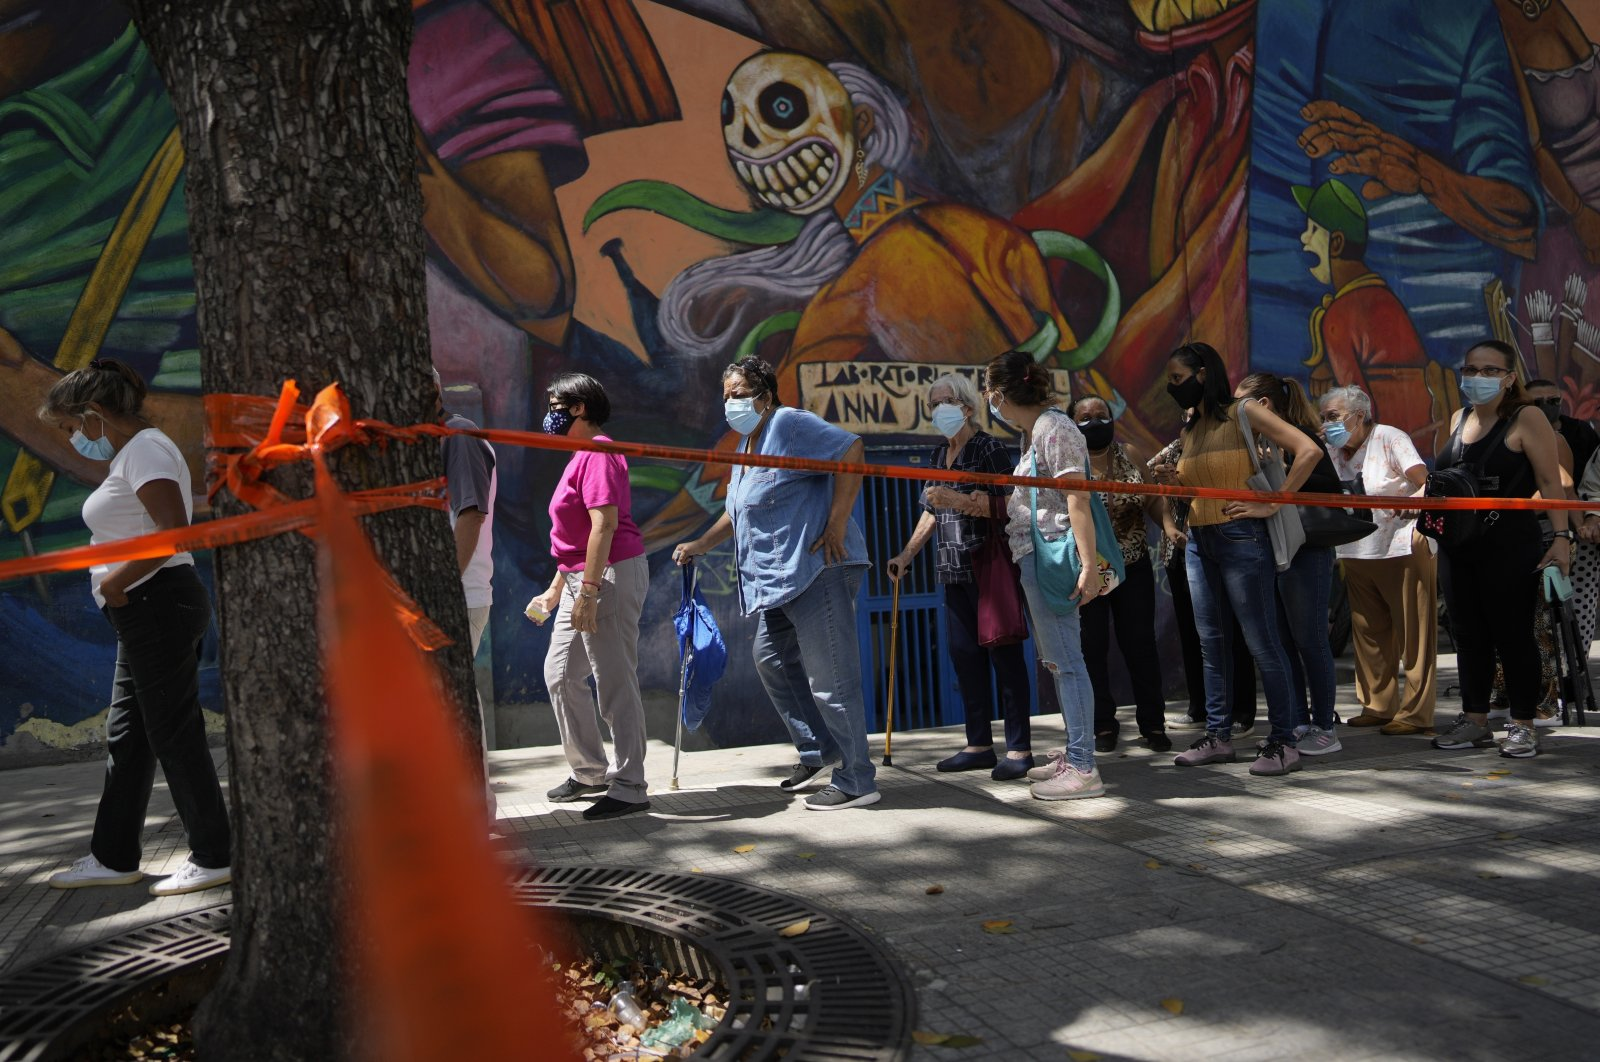 Residents stand in line to be injected with a second dose of the Sputnik V COVID-19 vaccine after more than a three-month delay, in Caracas, Venezuela, Sept. 21, 2021. (AP Photo)